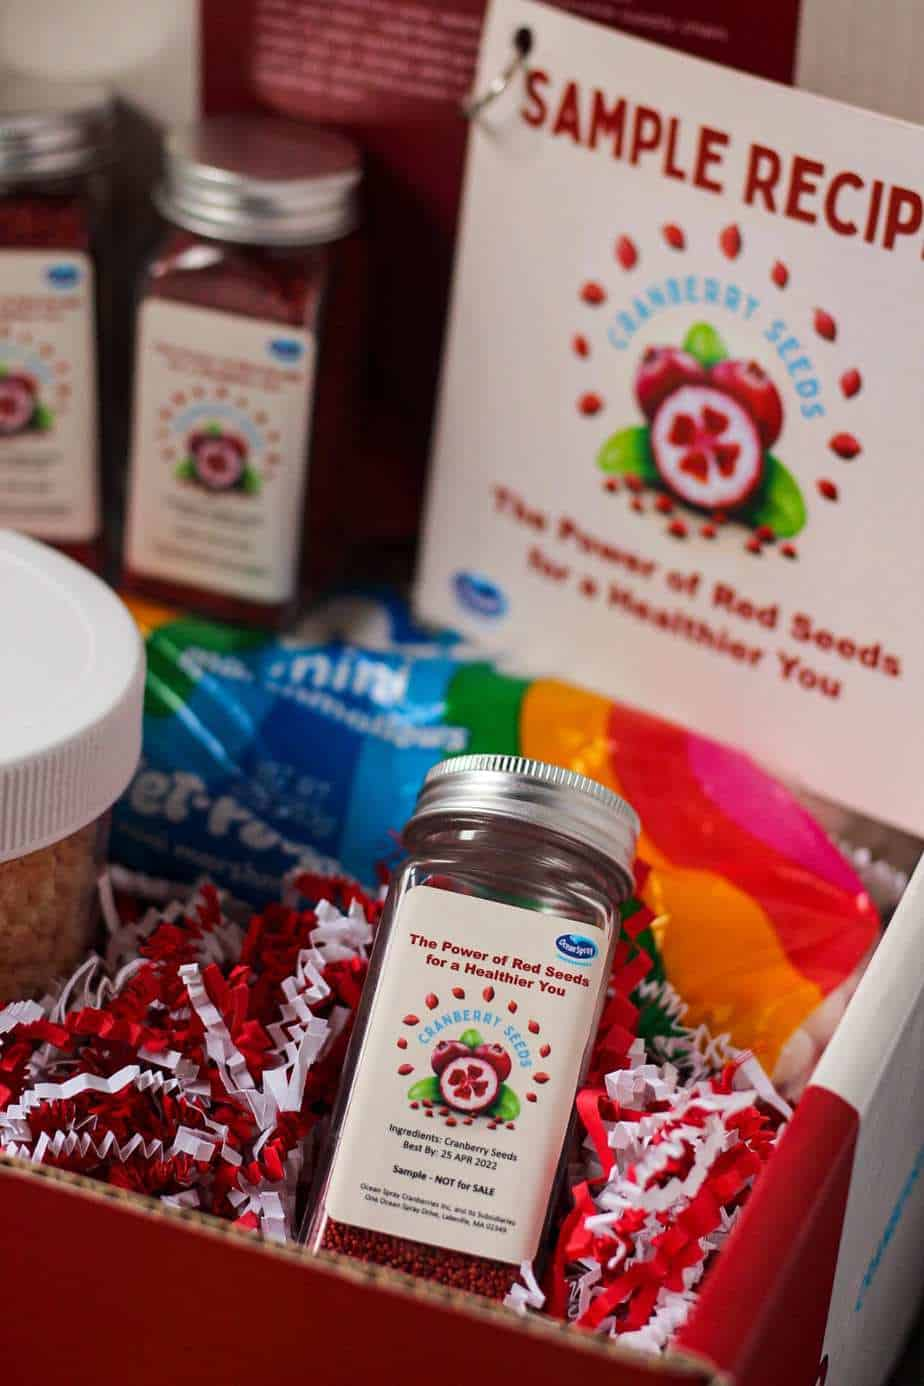 overhead shot of Ocean Spray Cranberry Seeds in box with recipe cards and package of marshmallows in the background.